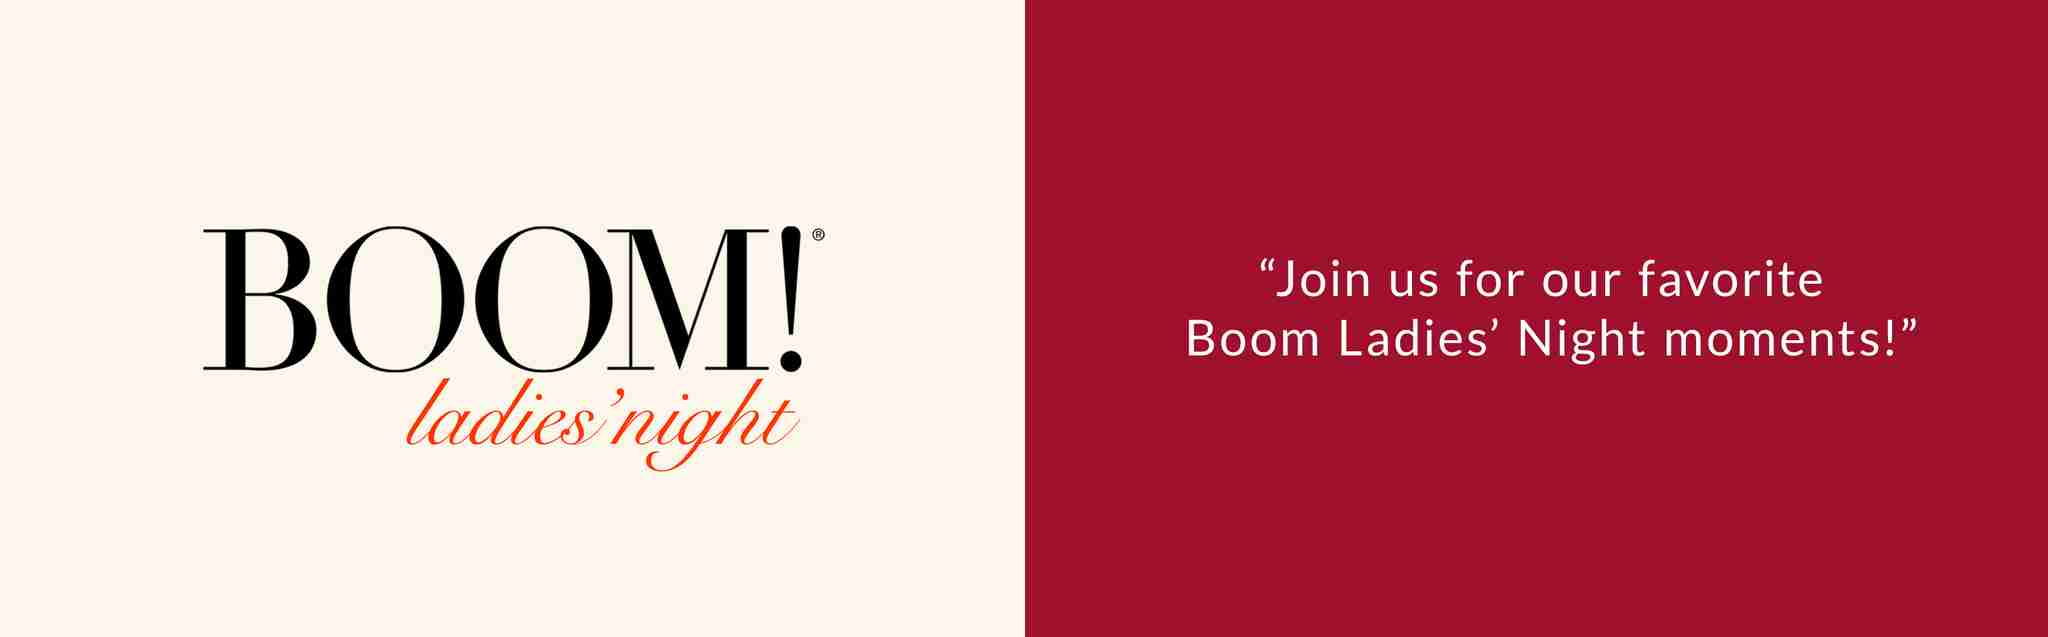 Our favorite Boom Ladies' Night moments